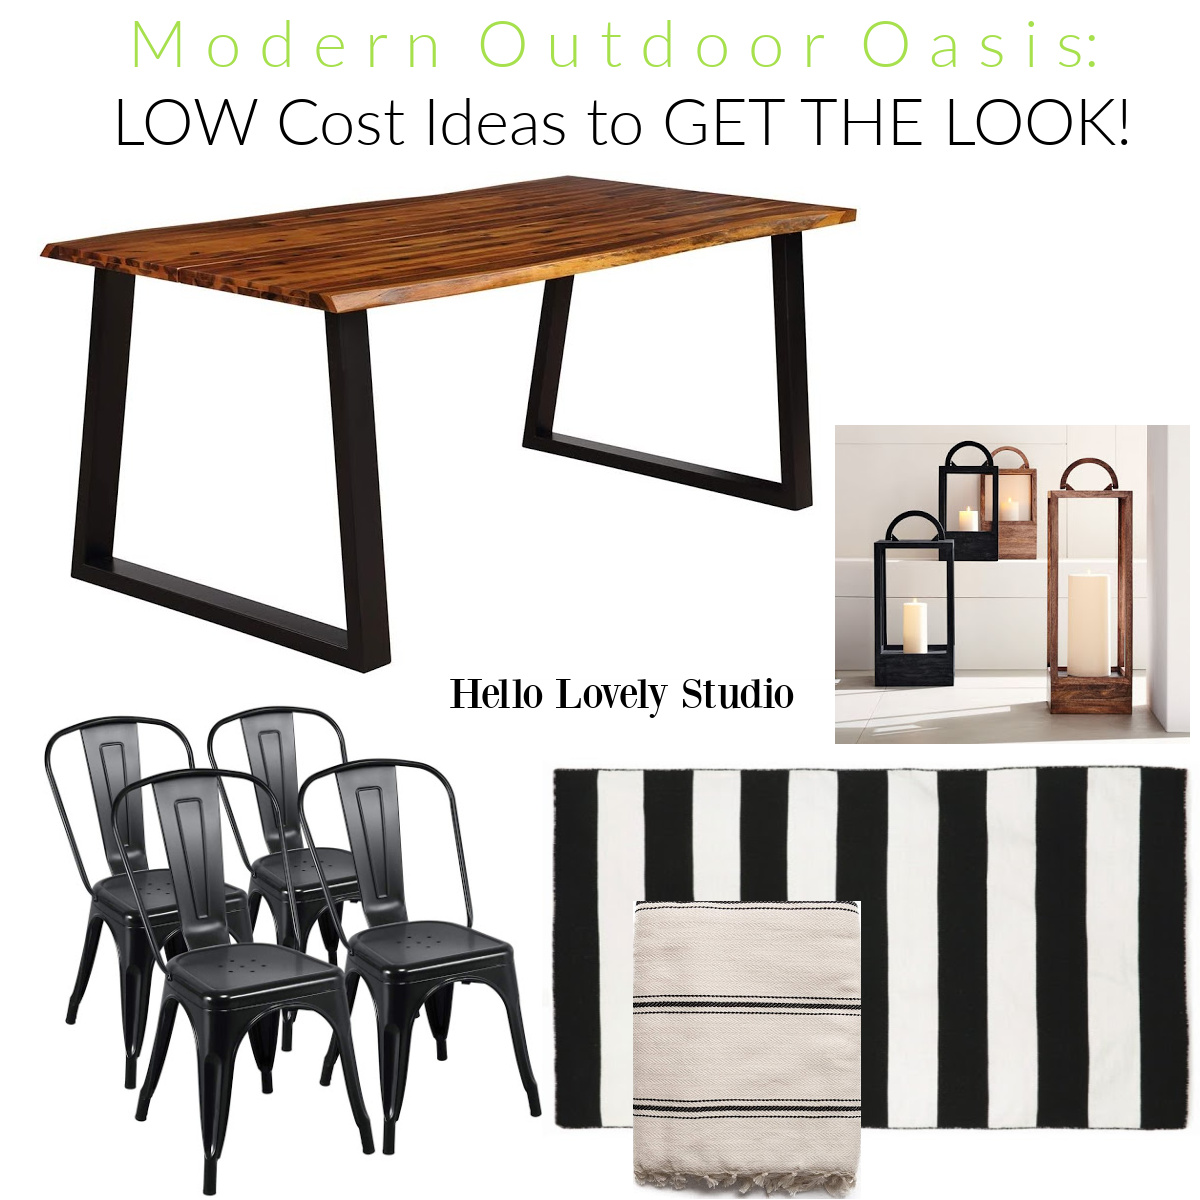 Modern Outdoor Oasis: low cost ideas to get the look on Hello Lovely Studio. #patiofurniture #outdoorideas #outdoorliving #outdoorfurniture #Outdoordecorating